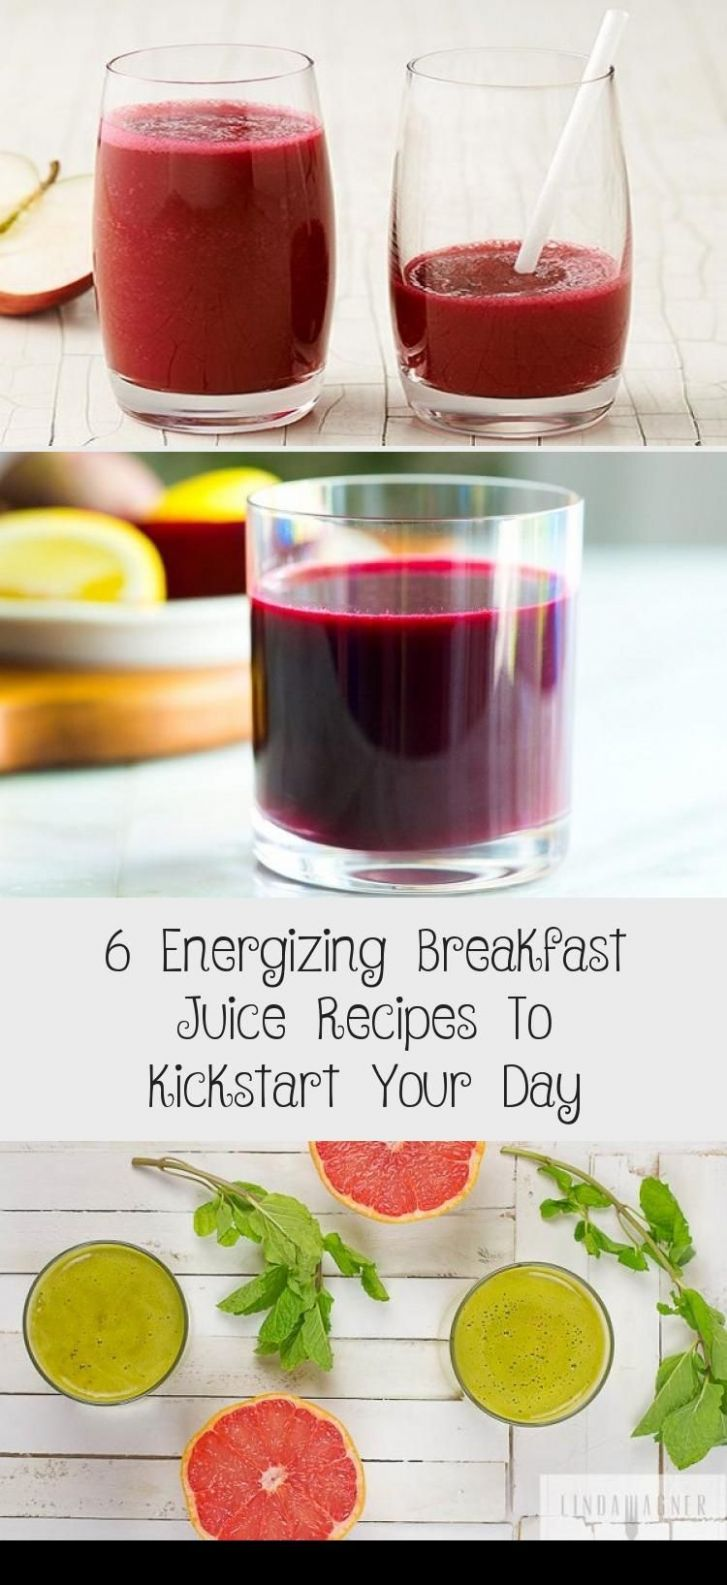 10 Energizing Breakfast Juice Recipes To Kickstart Your Day in 10 ..